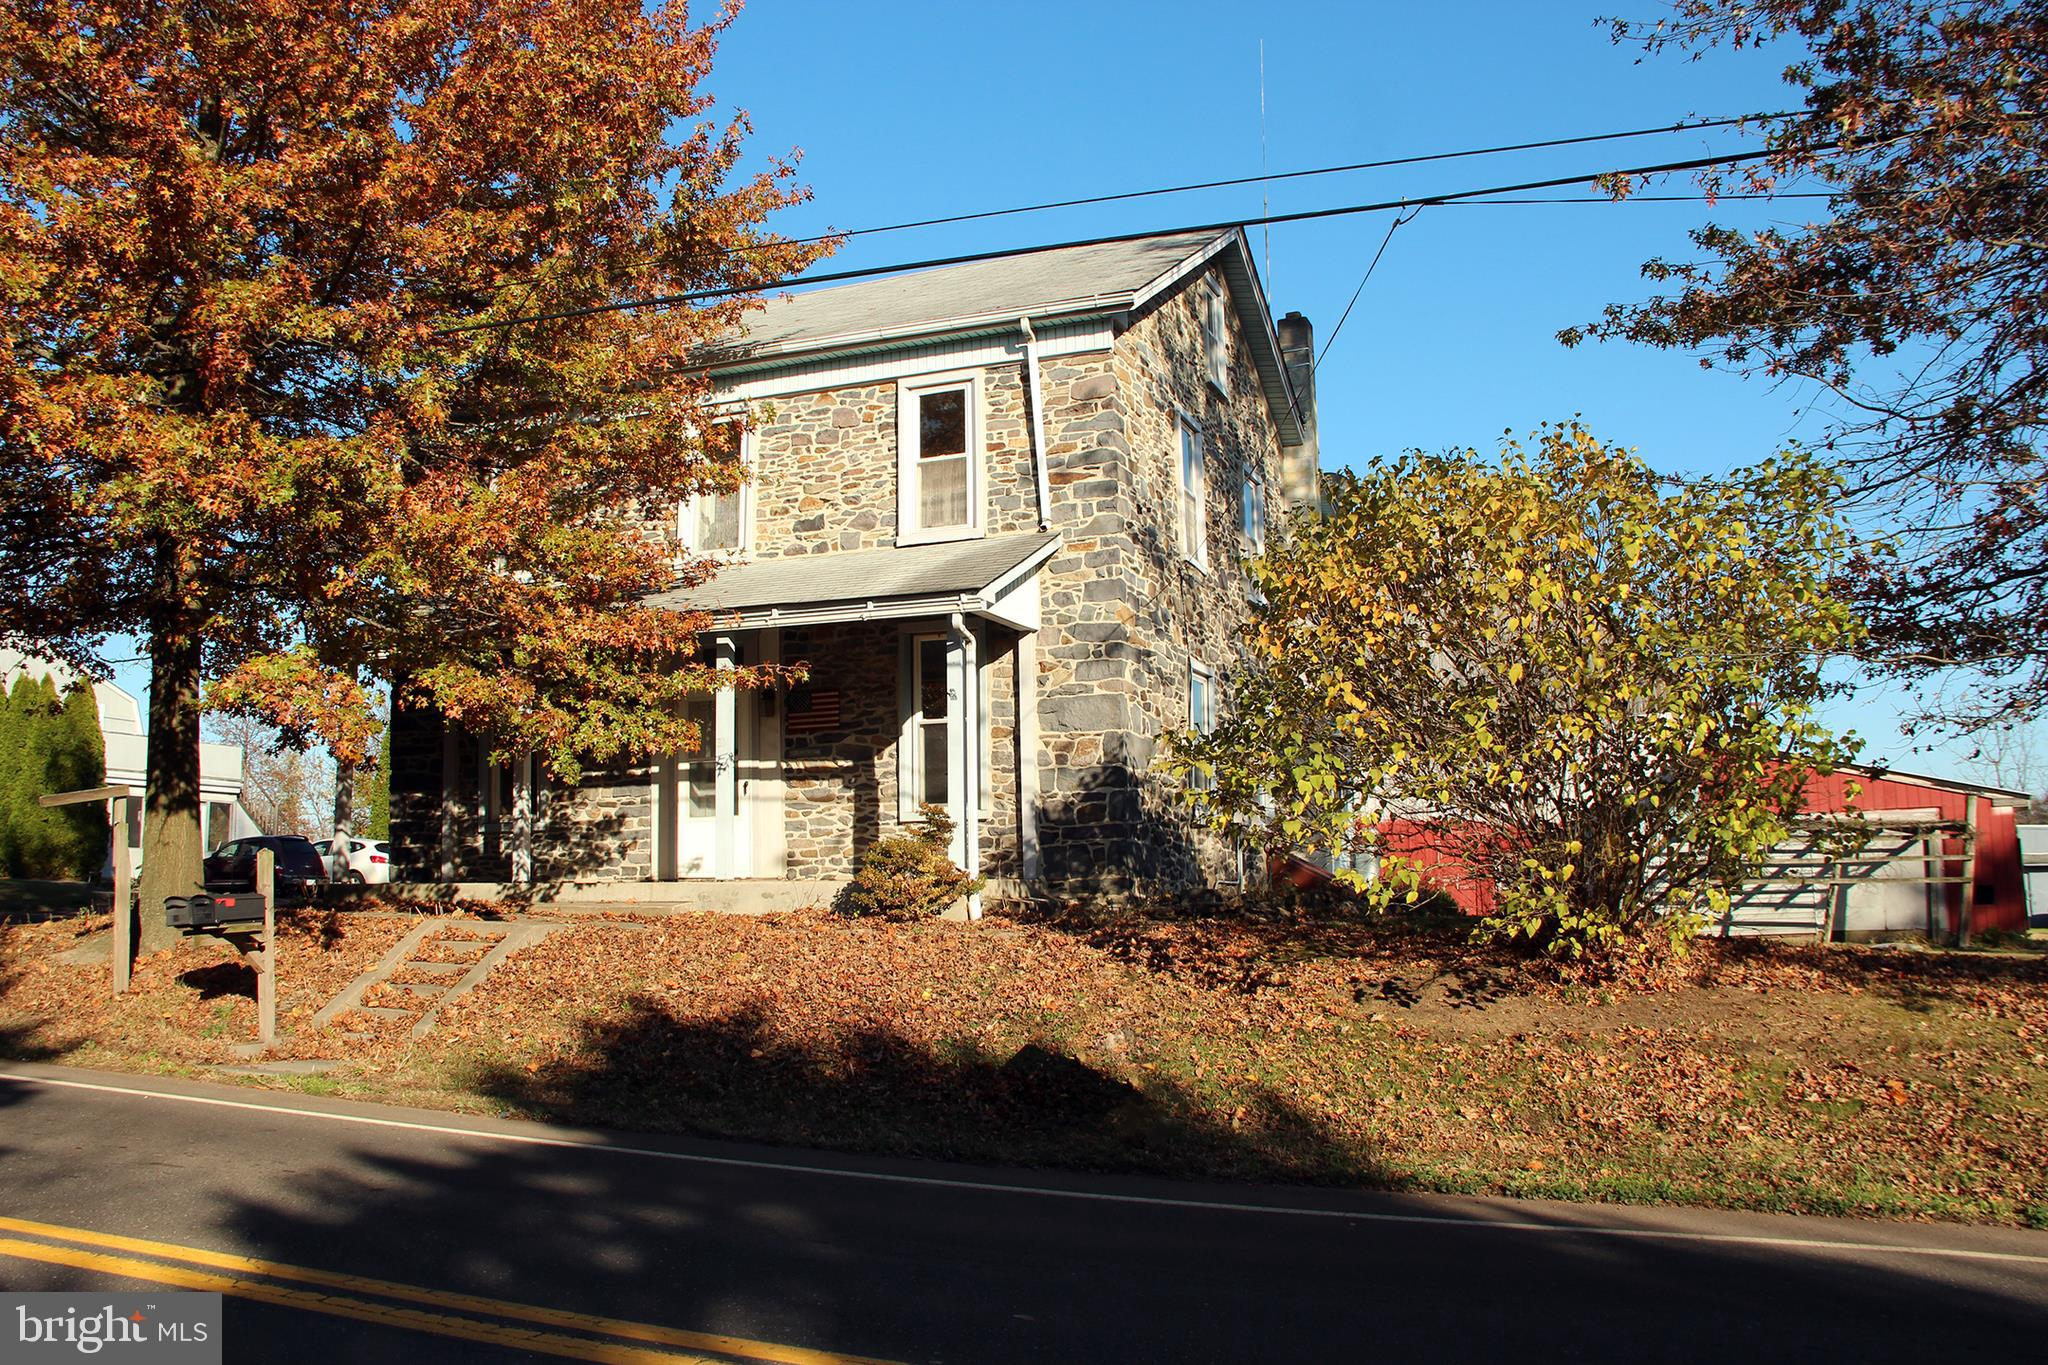 29 - 31 S ALLENTOWN ROAD, TELFORD, PA 18969